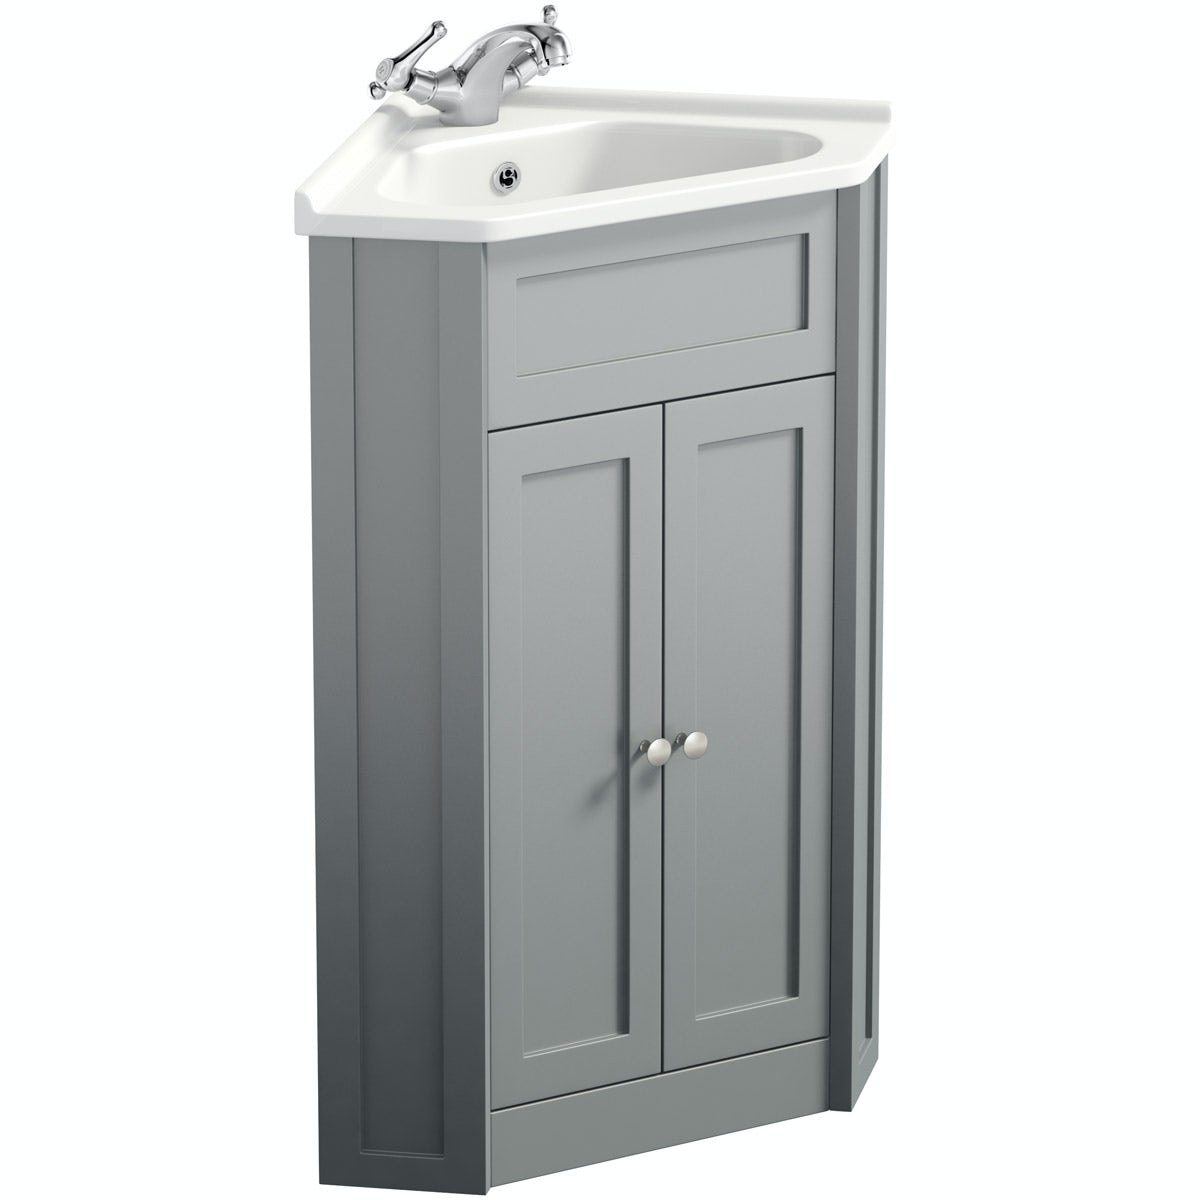 The Bath Co. Camberley satin grey corner unit and basin 580mm